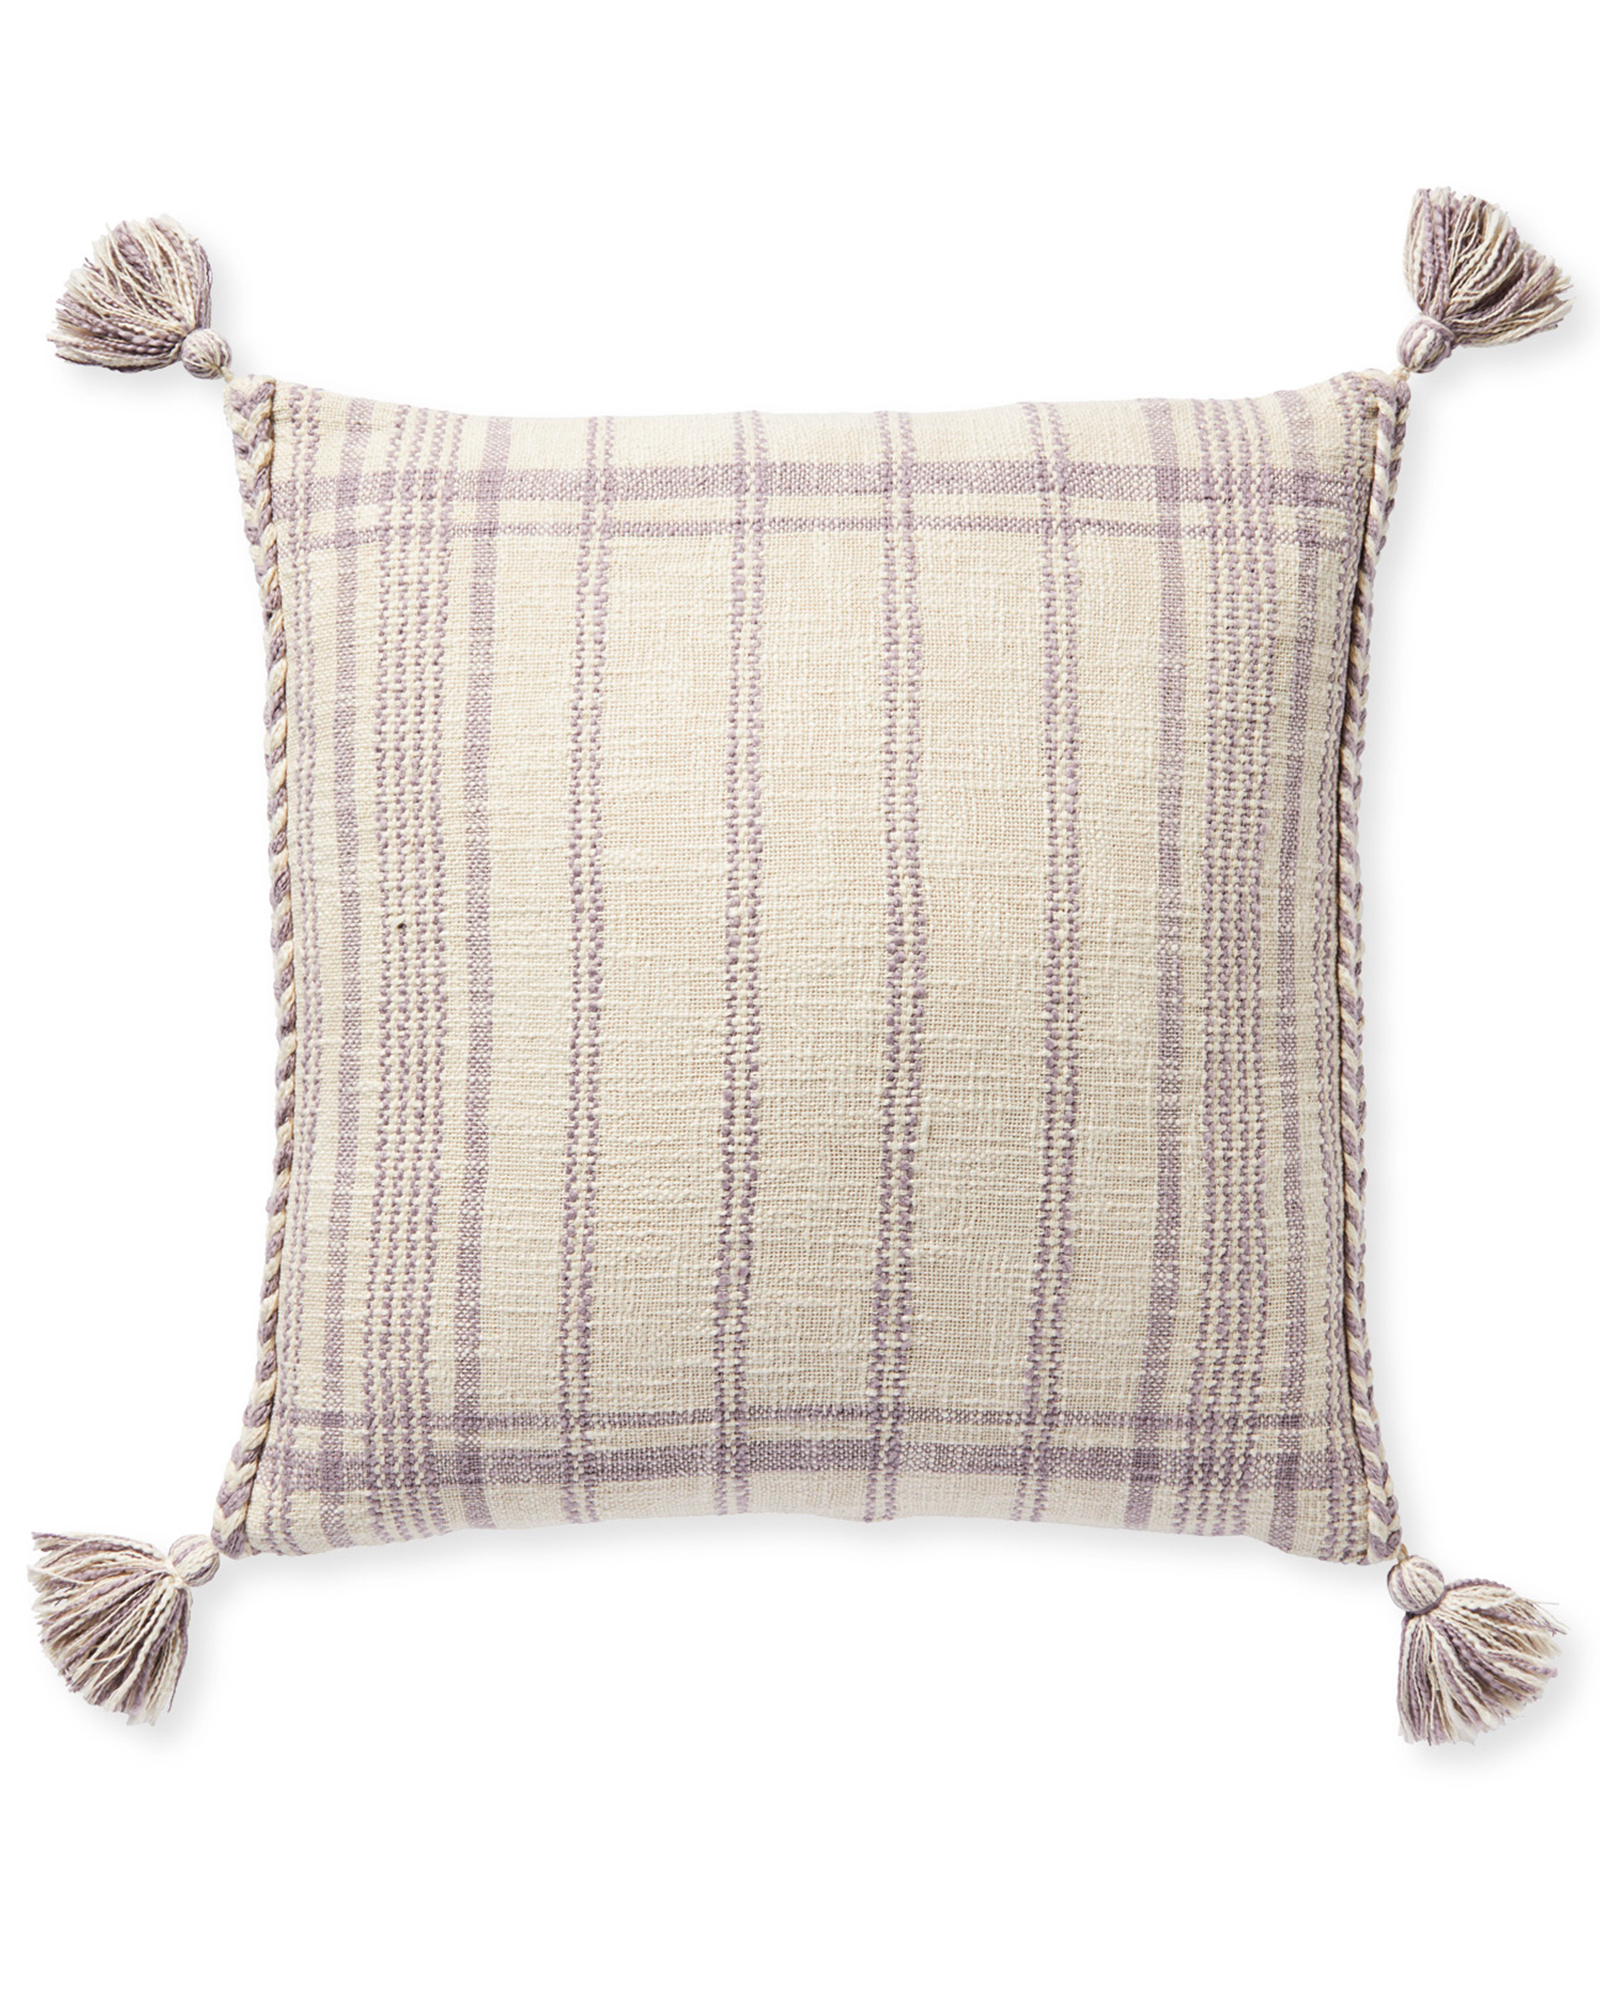 Ridge Stripe Pillow Cover, Lavender